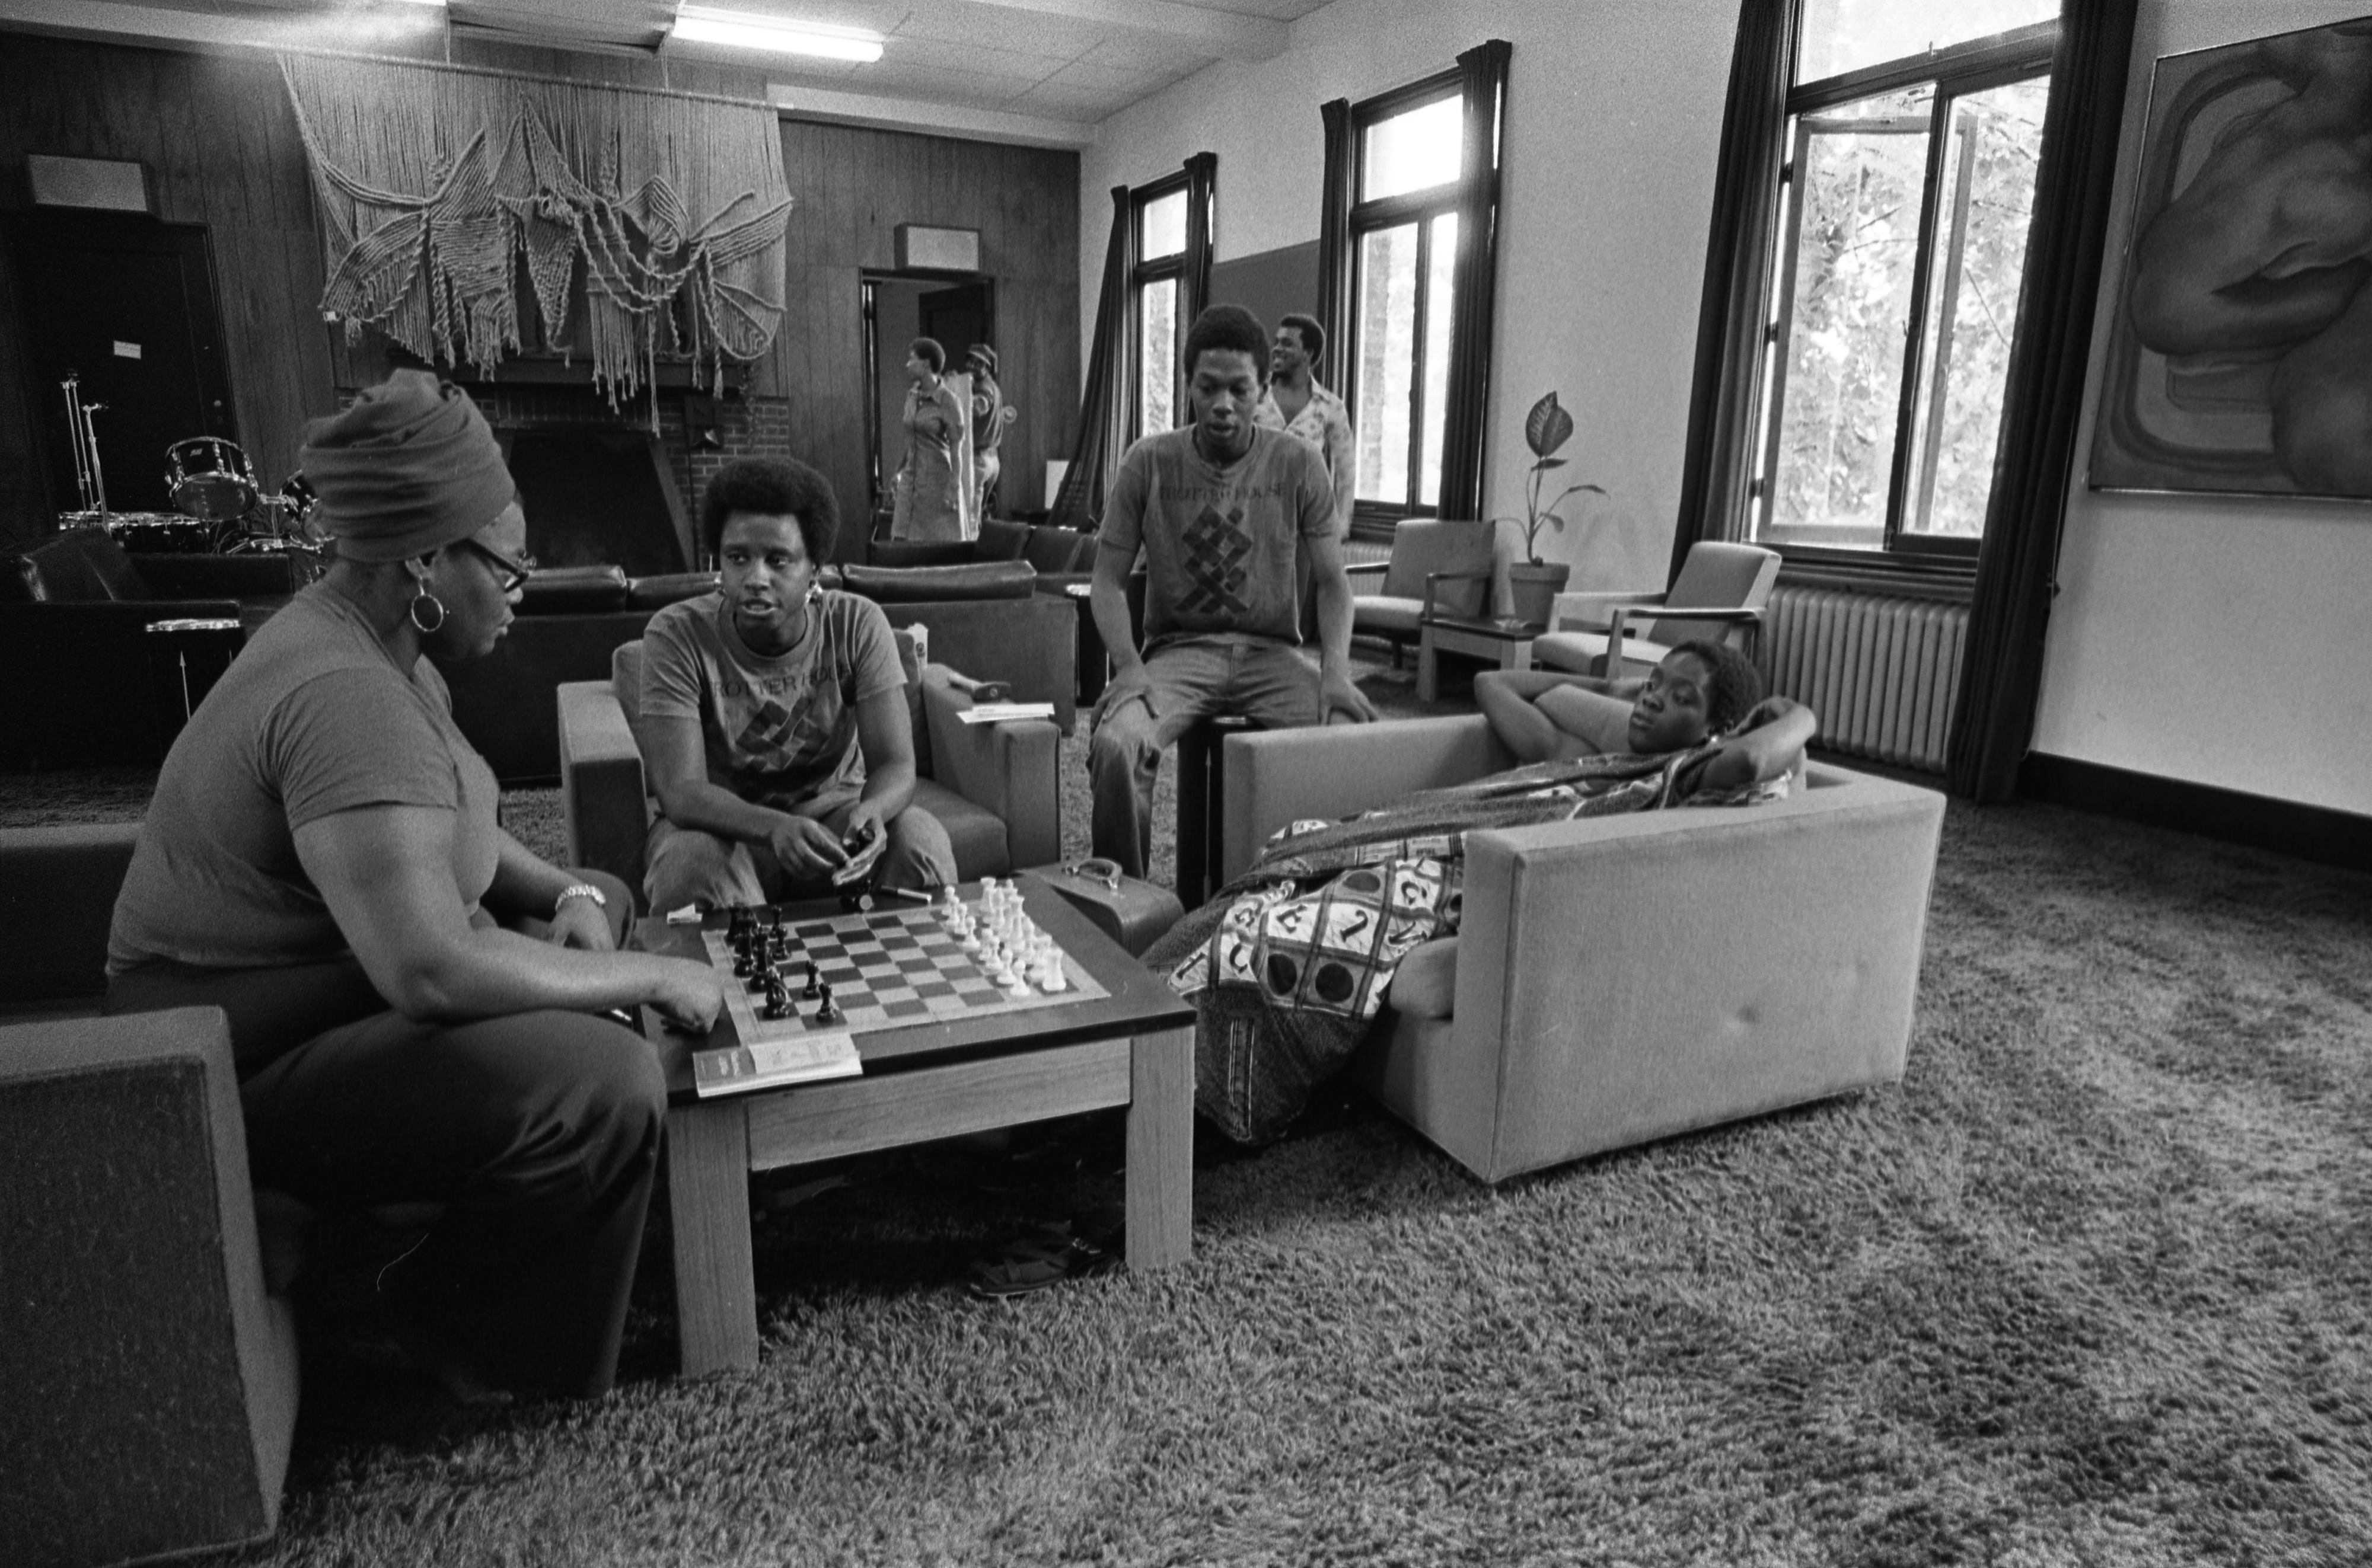 Students Enjoy A Game Of Chess At The Trotter House, September 10, 1975 image